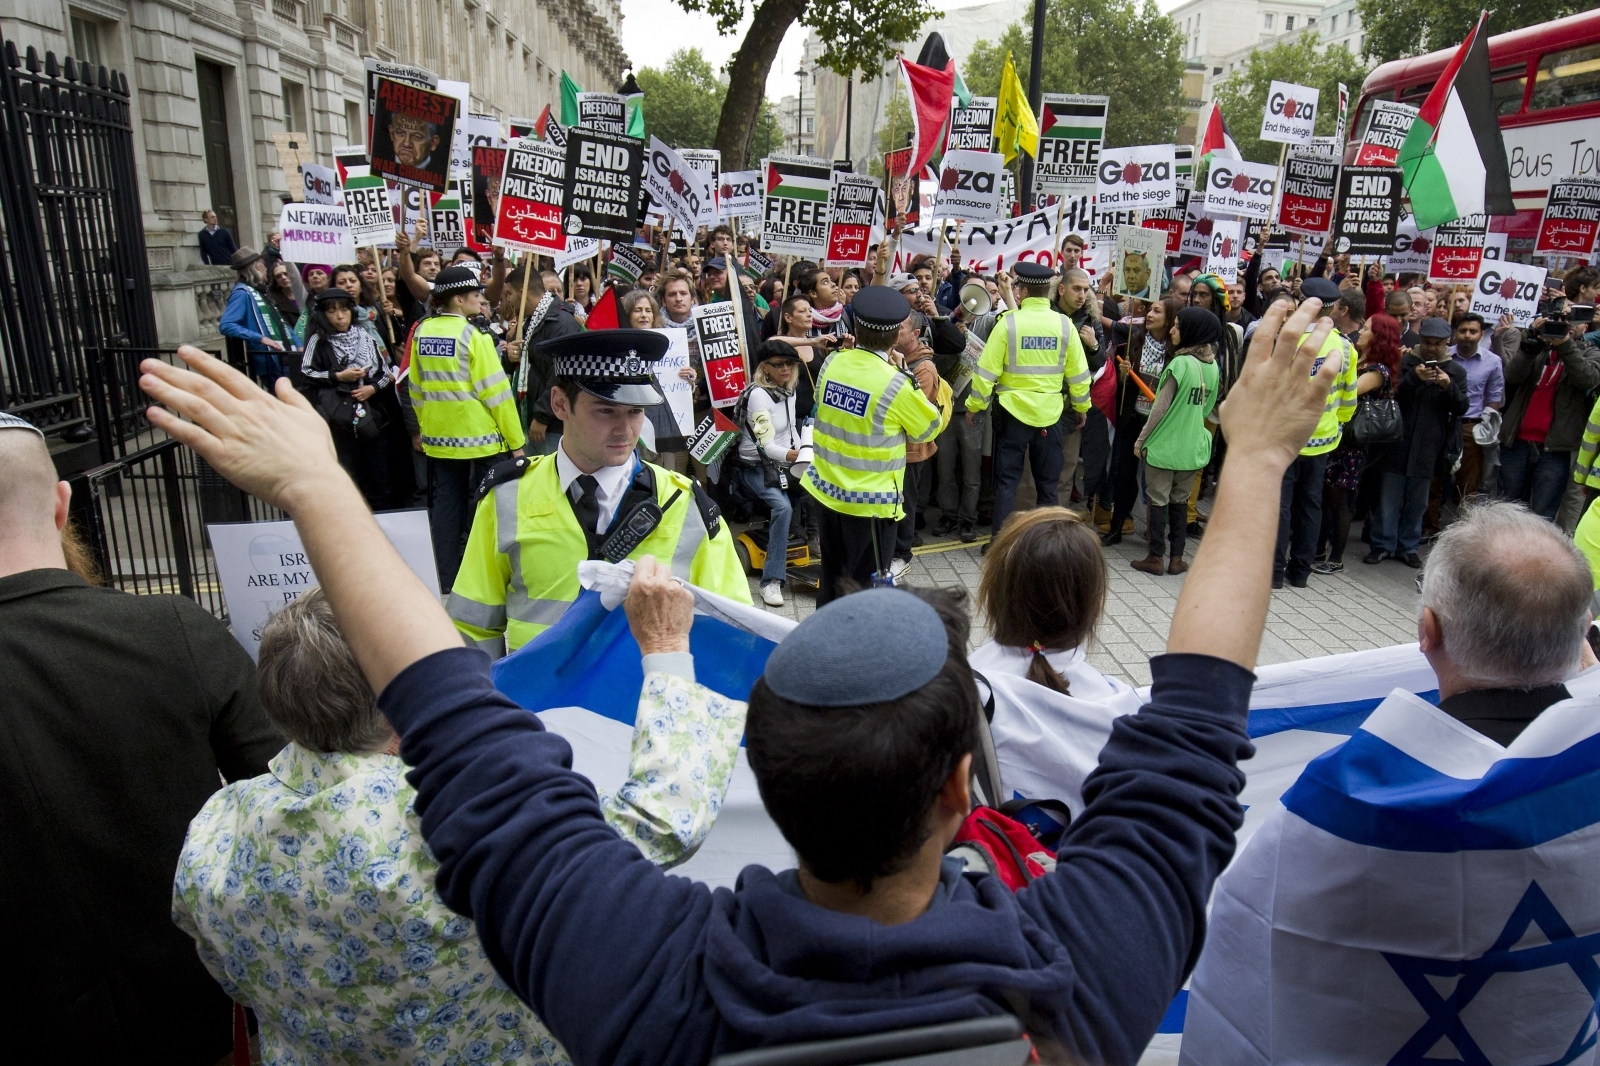 Left wing groups 'care more about hating Israel' than they do about fighting anti-Semitism